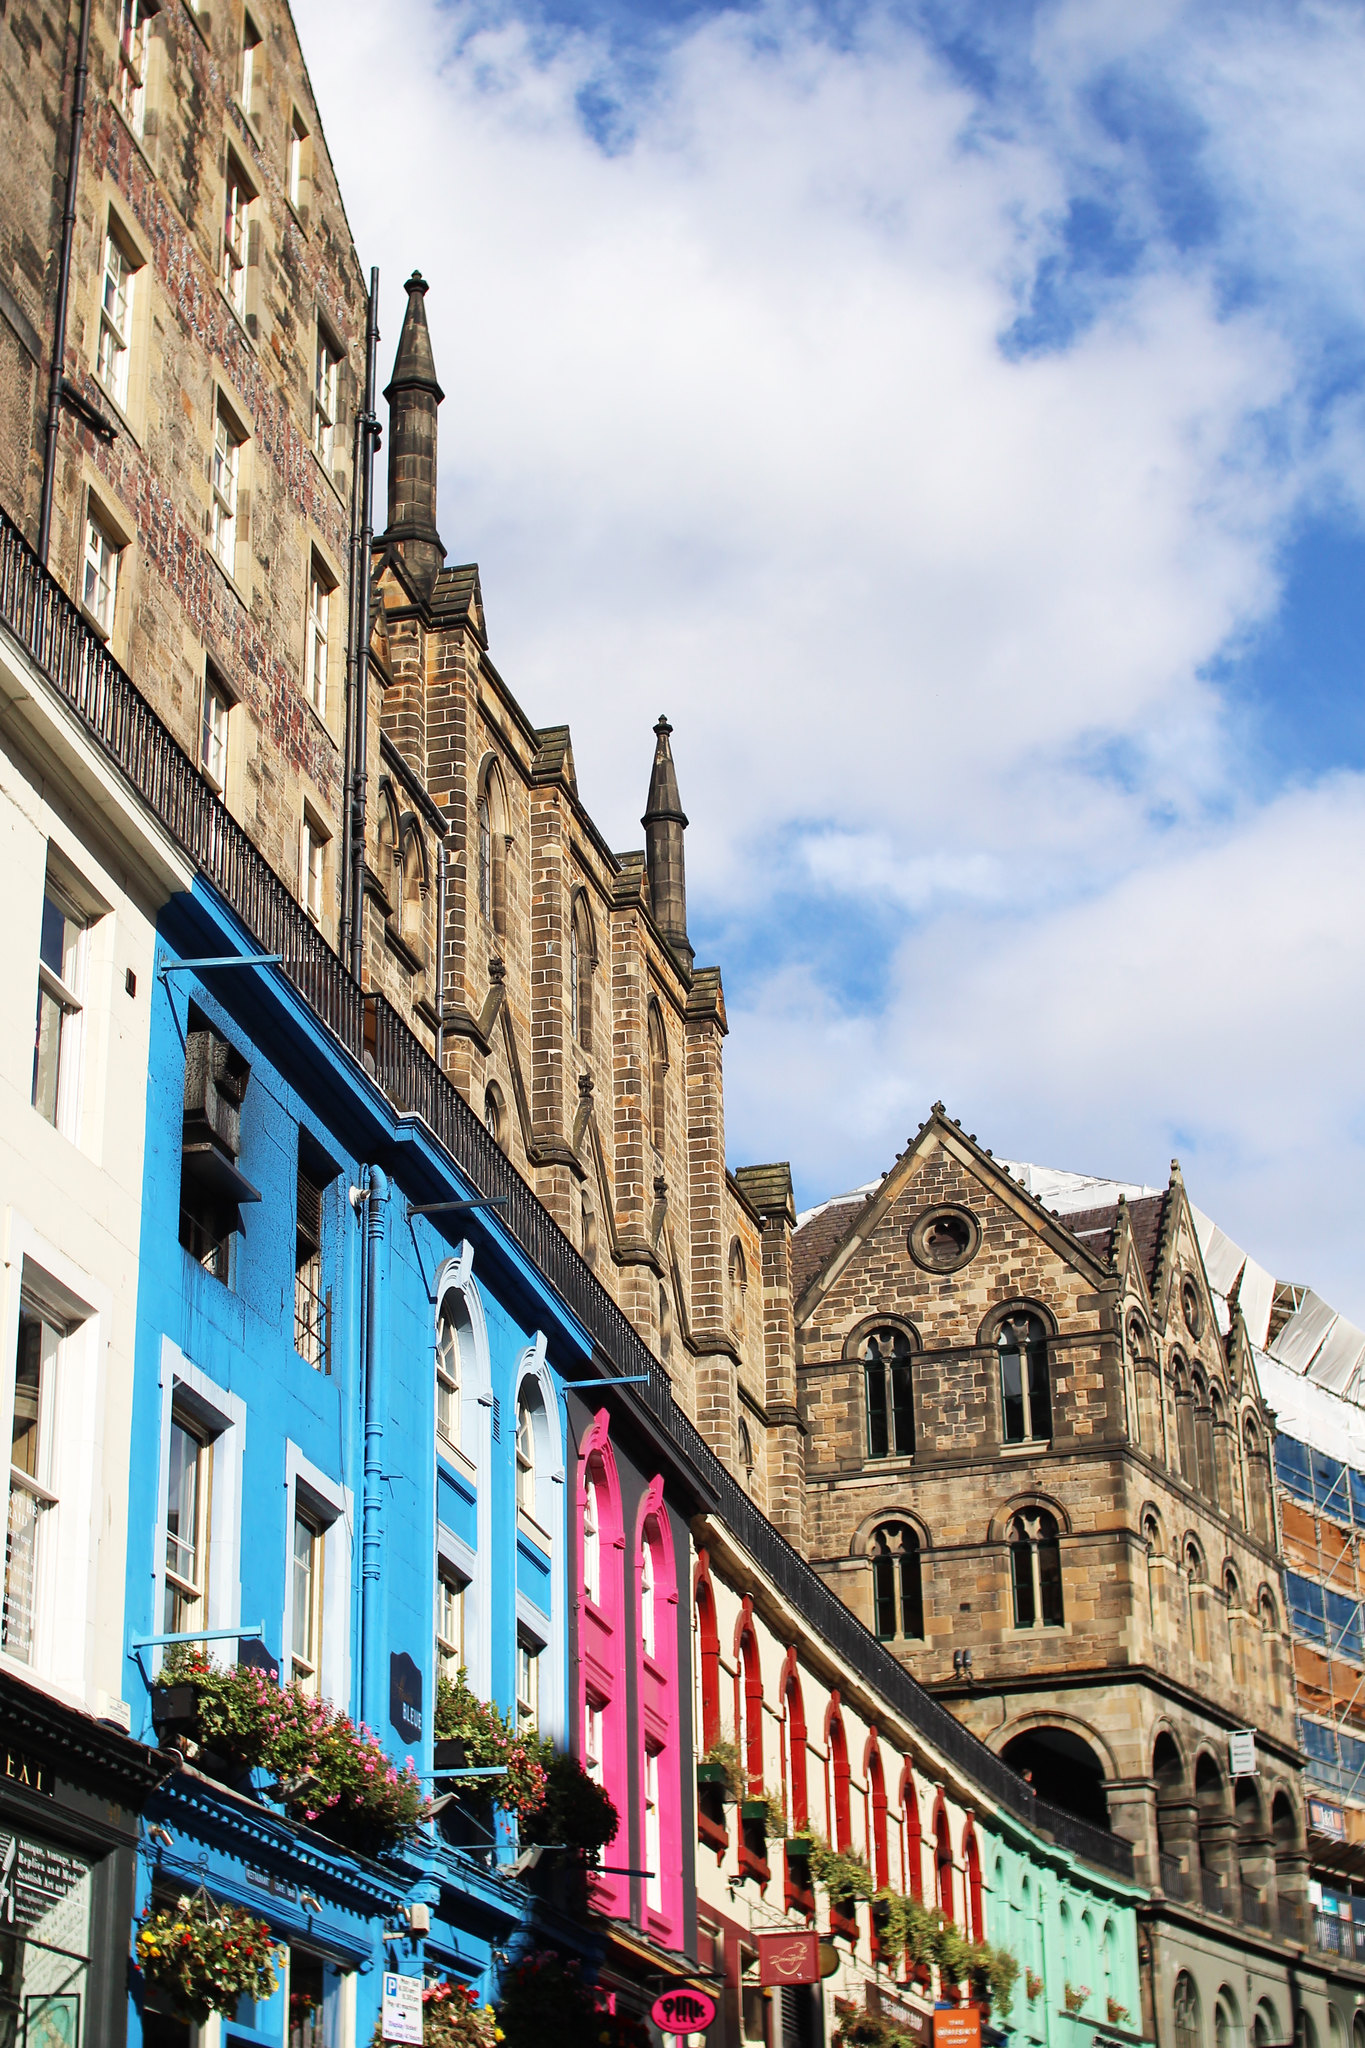 Edinburgh Old Town